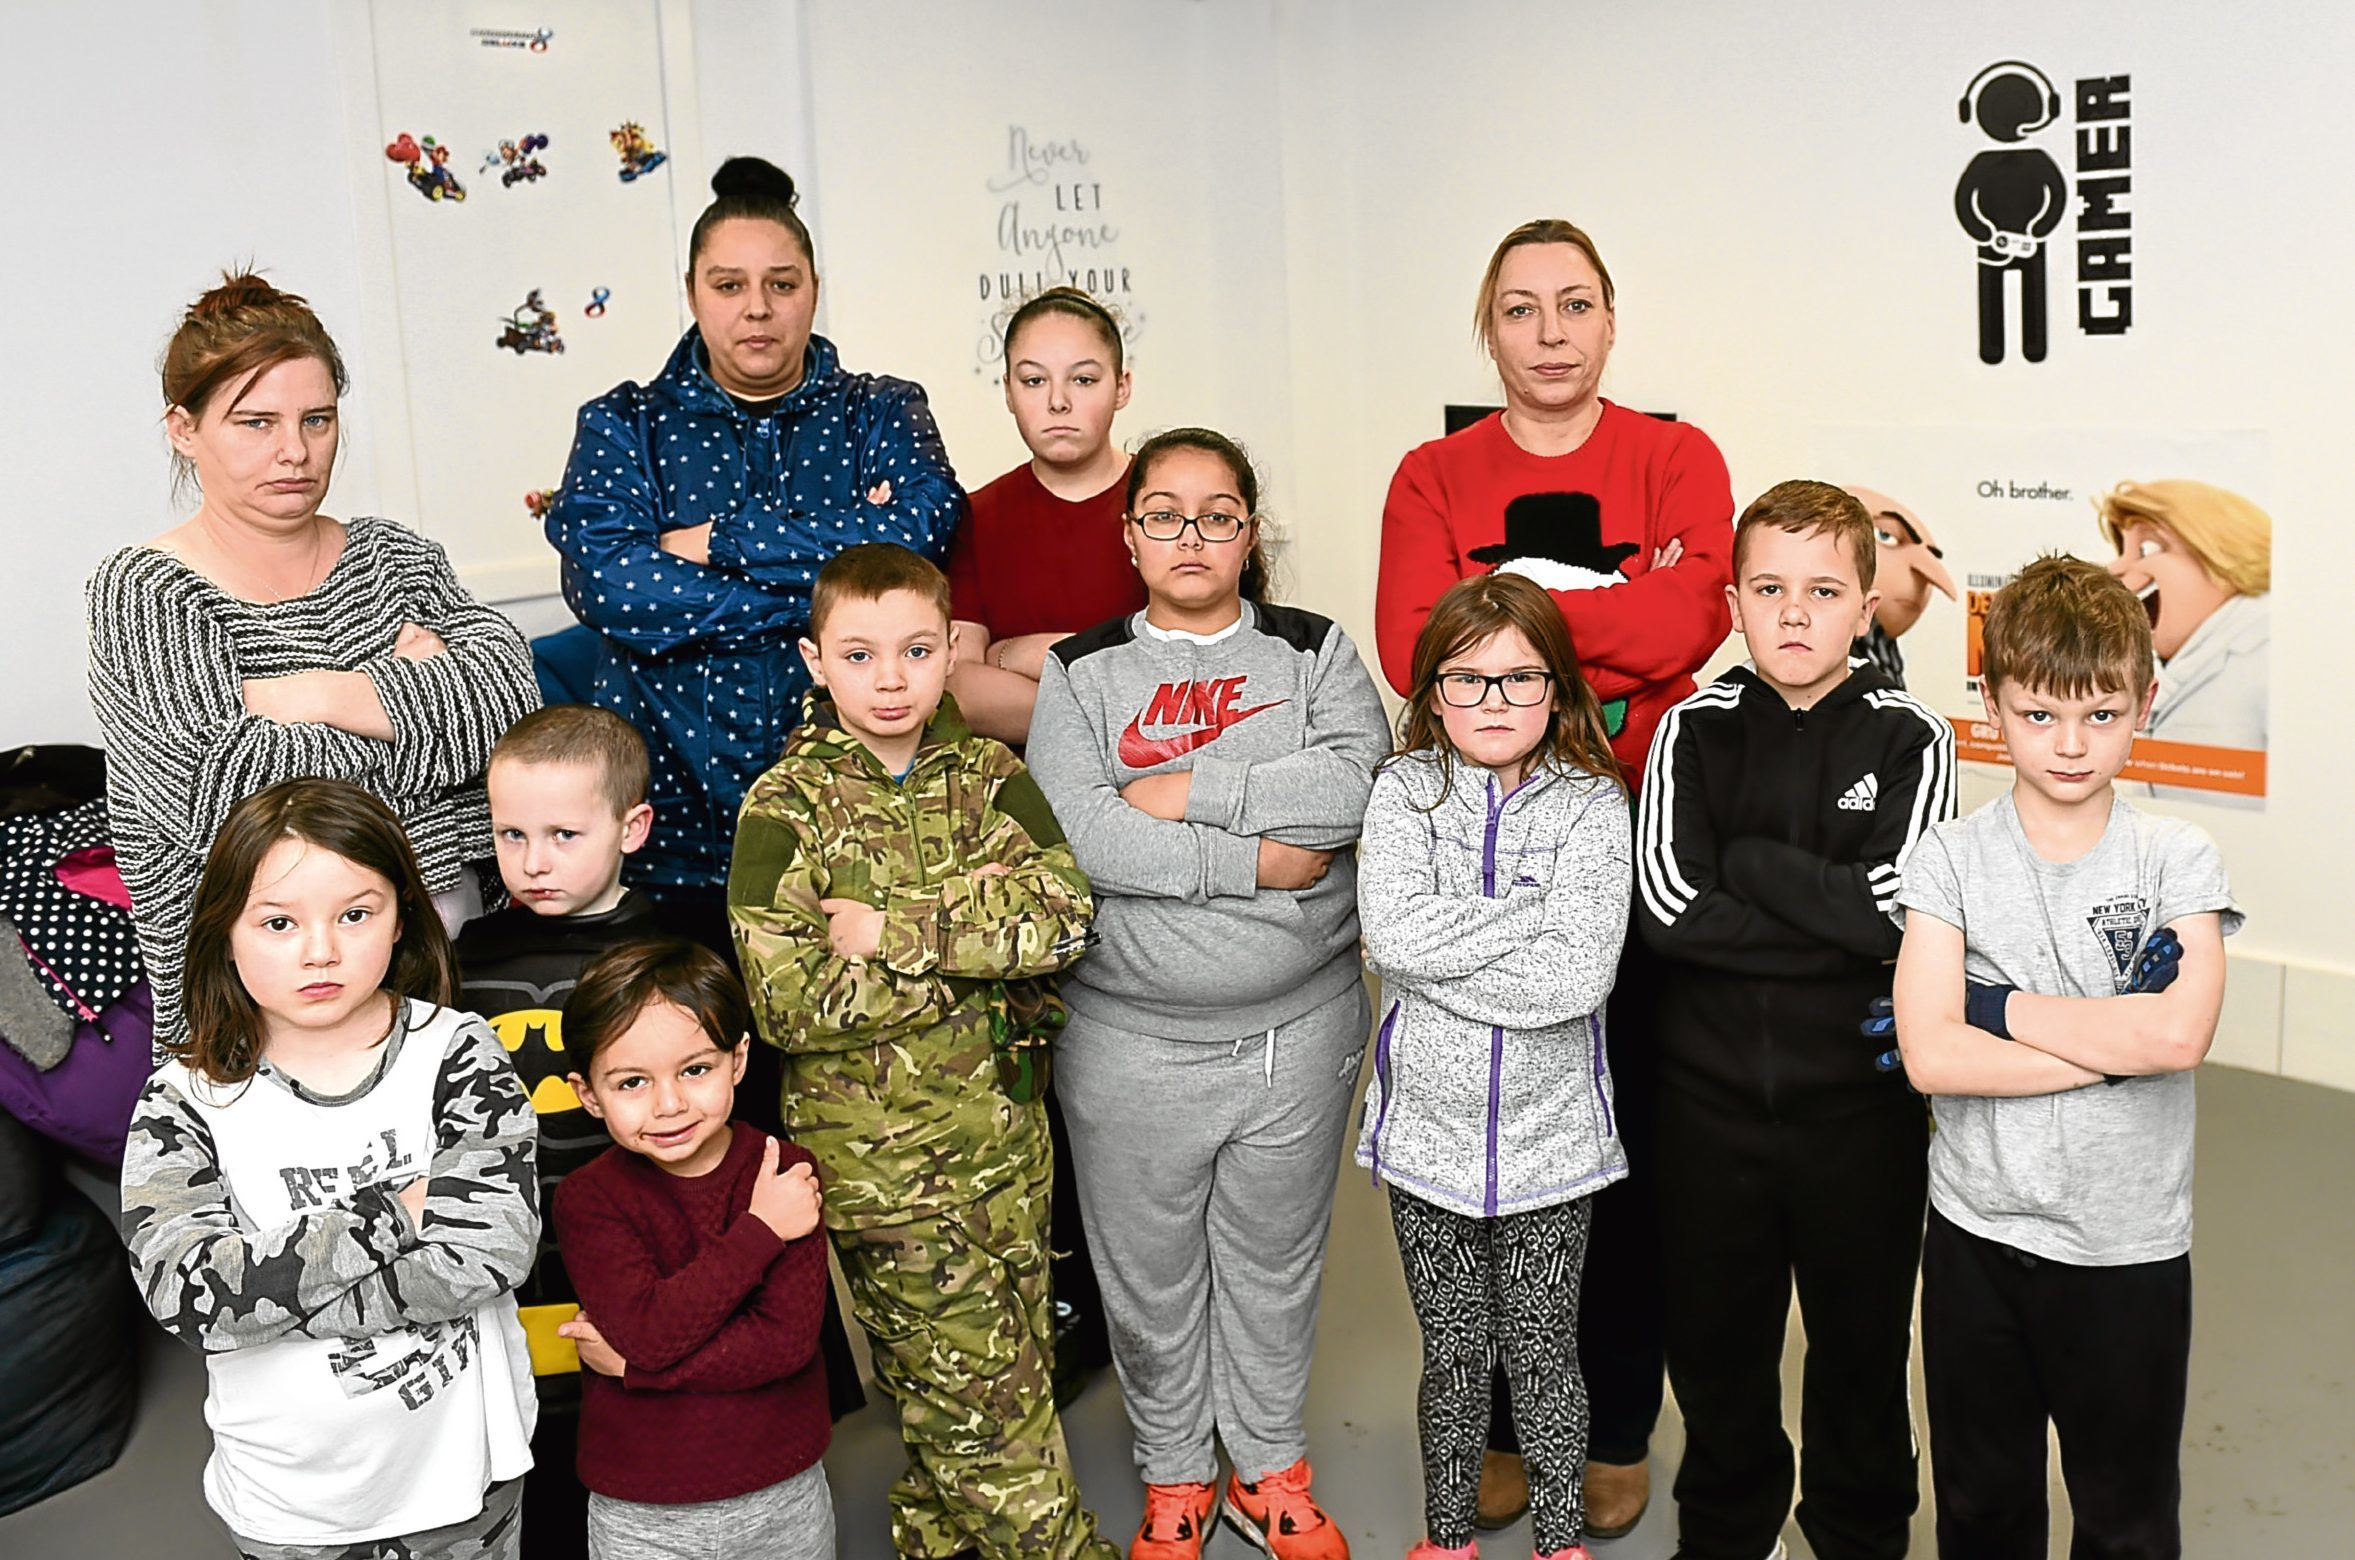 Staff and children in the games room at Powis Community Centre, Aberdeen.